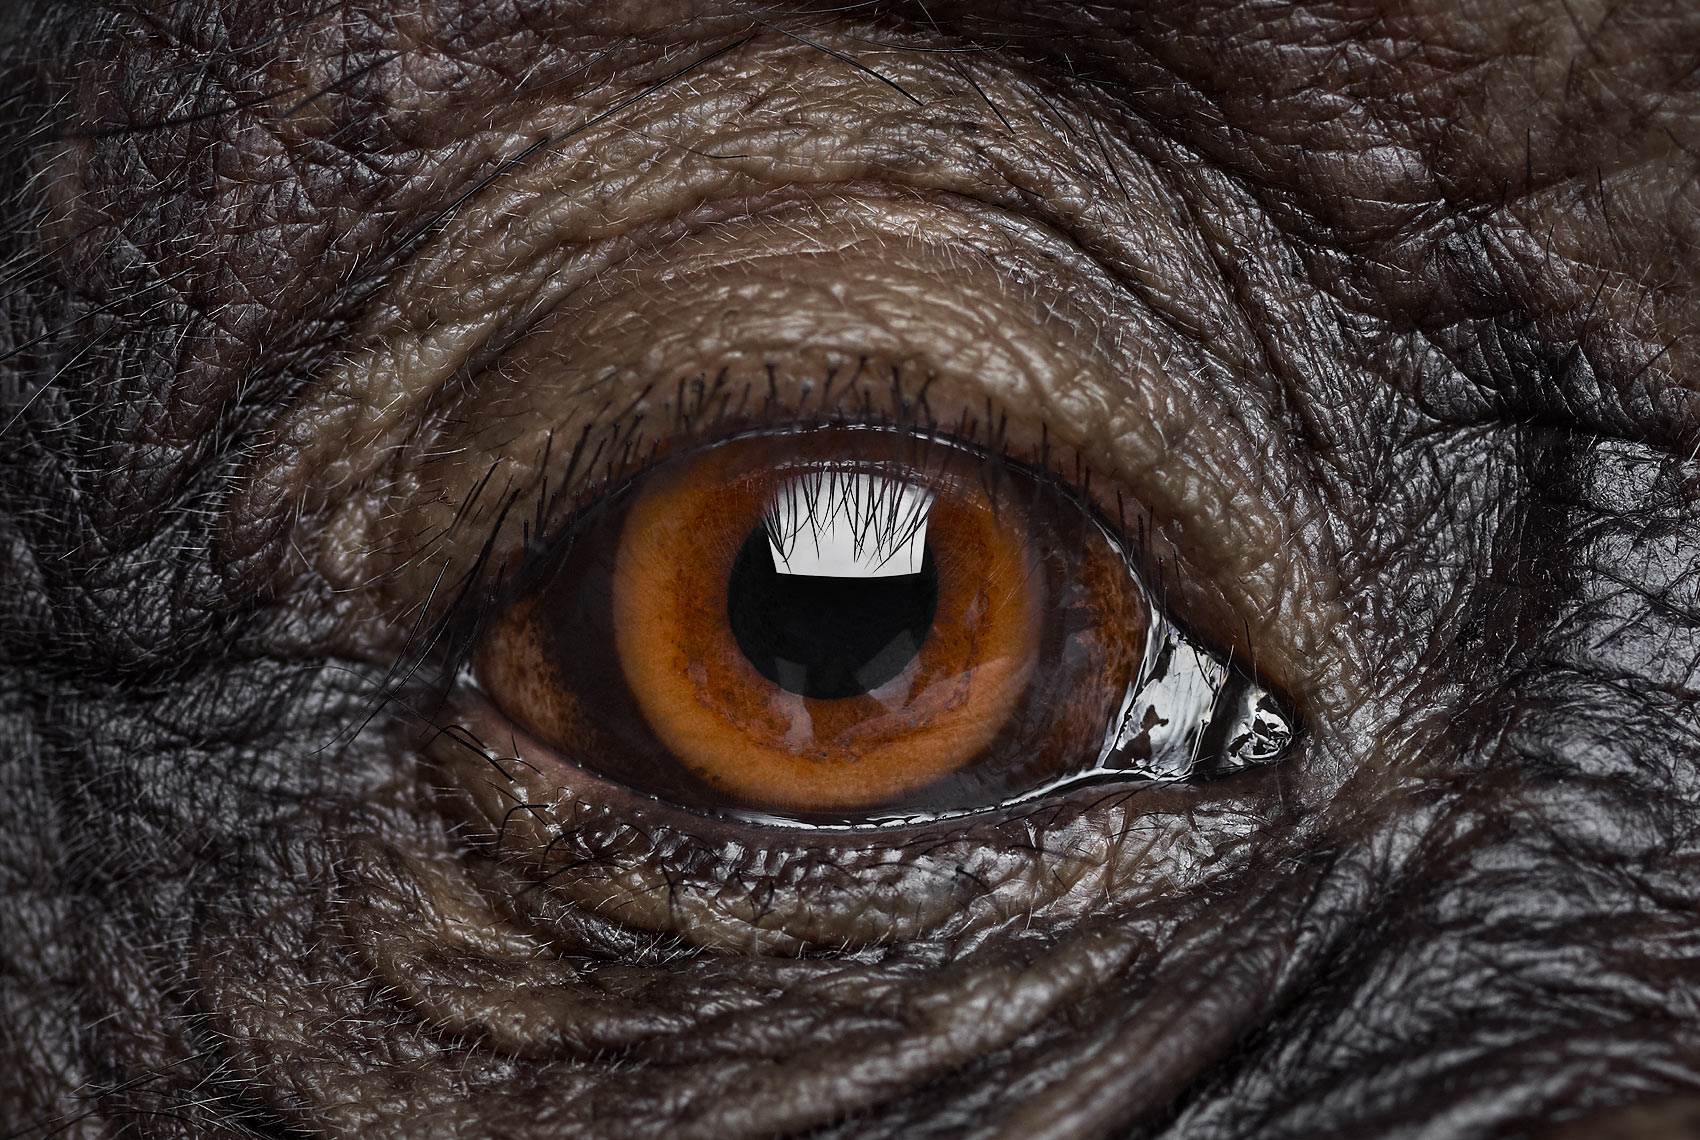 Chimpanzee eye close up studio portrait by wildlife photographer Brad Wilson